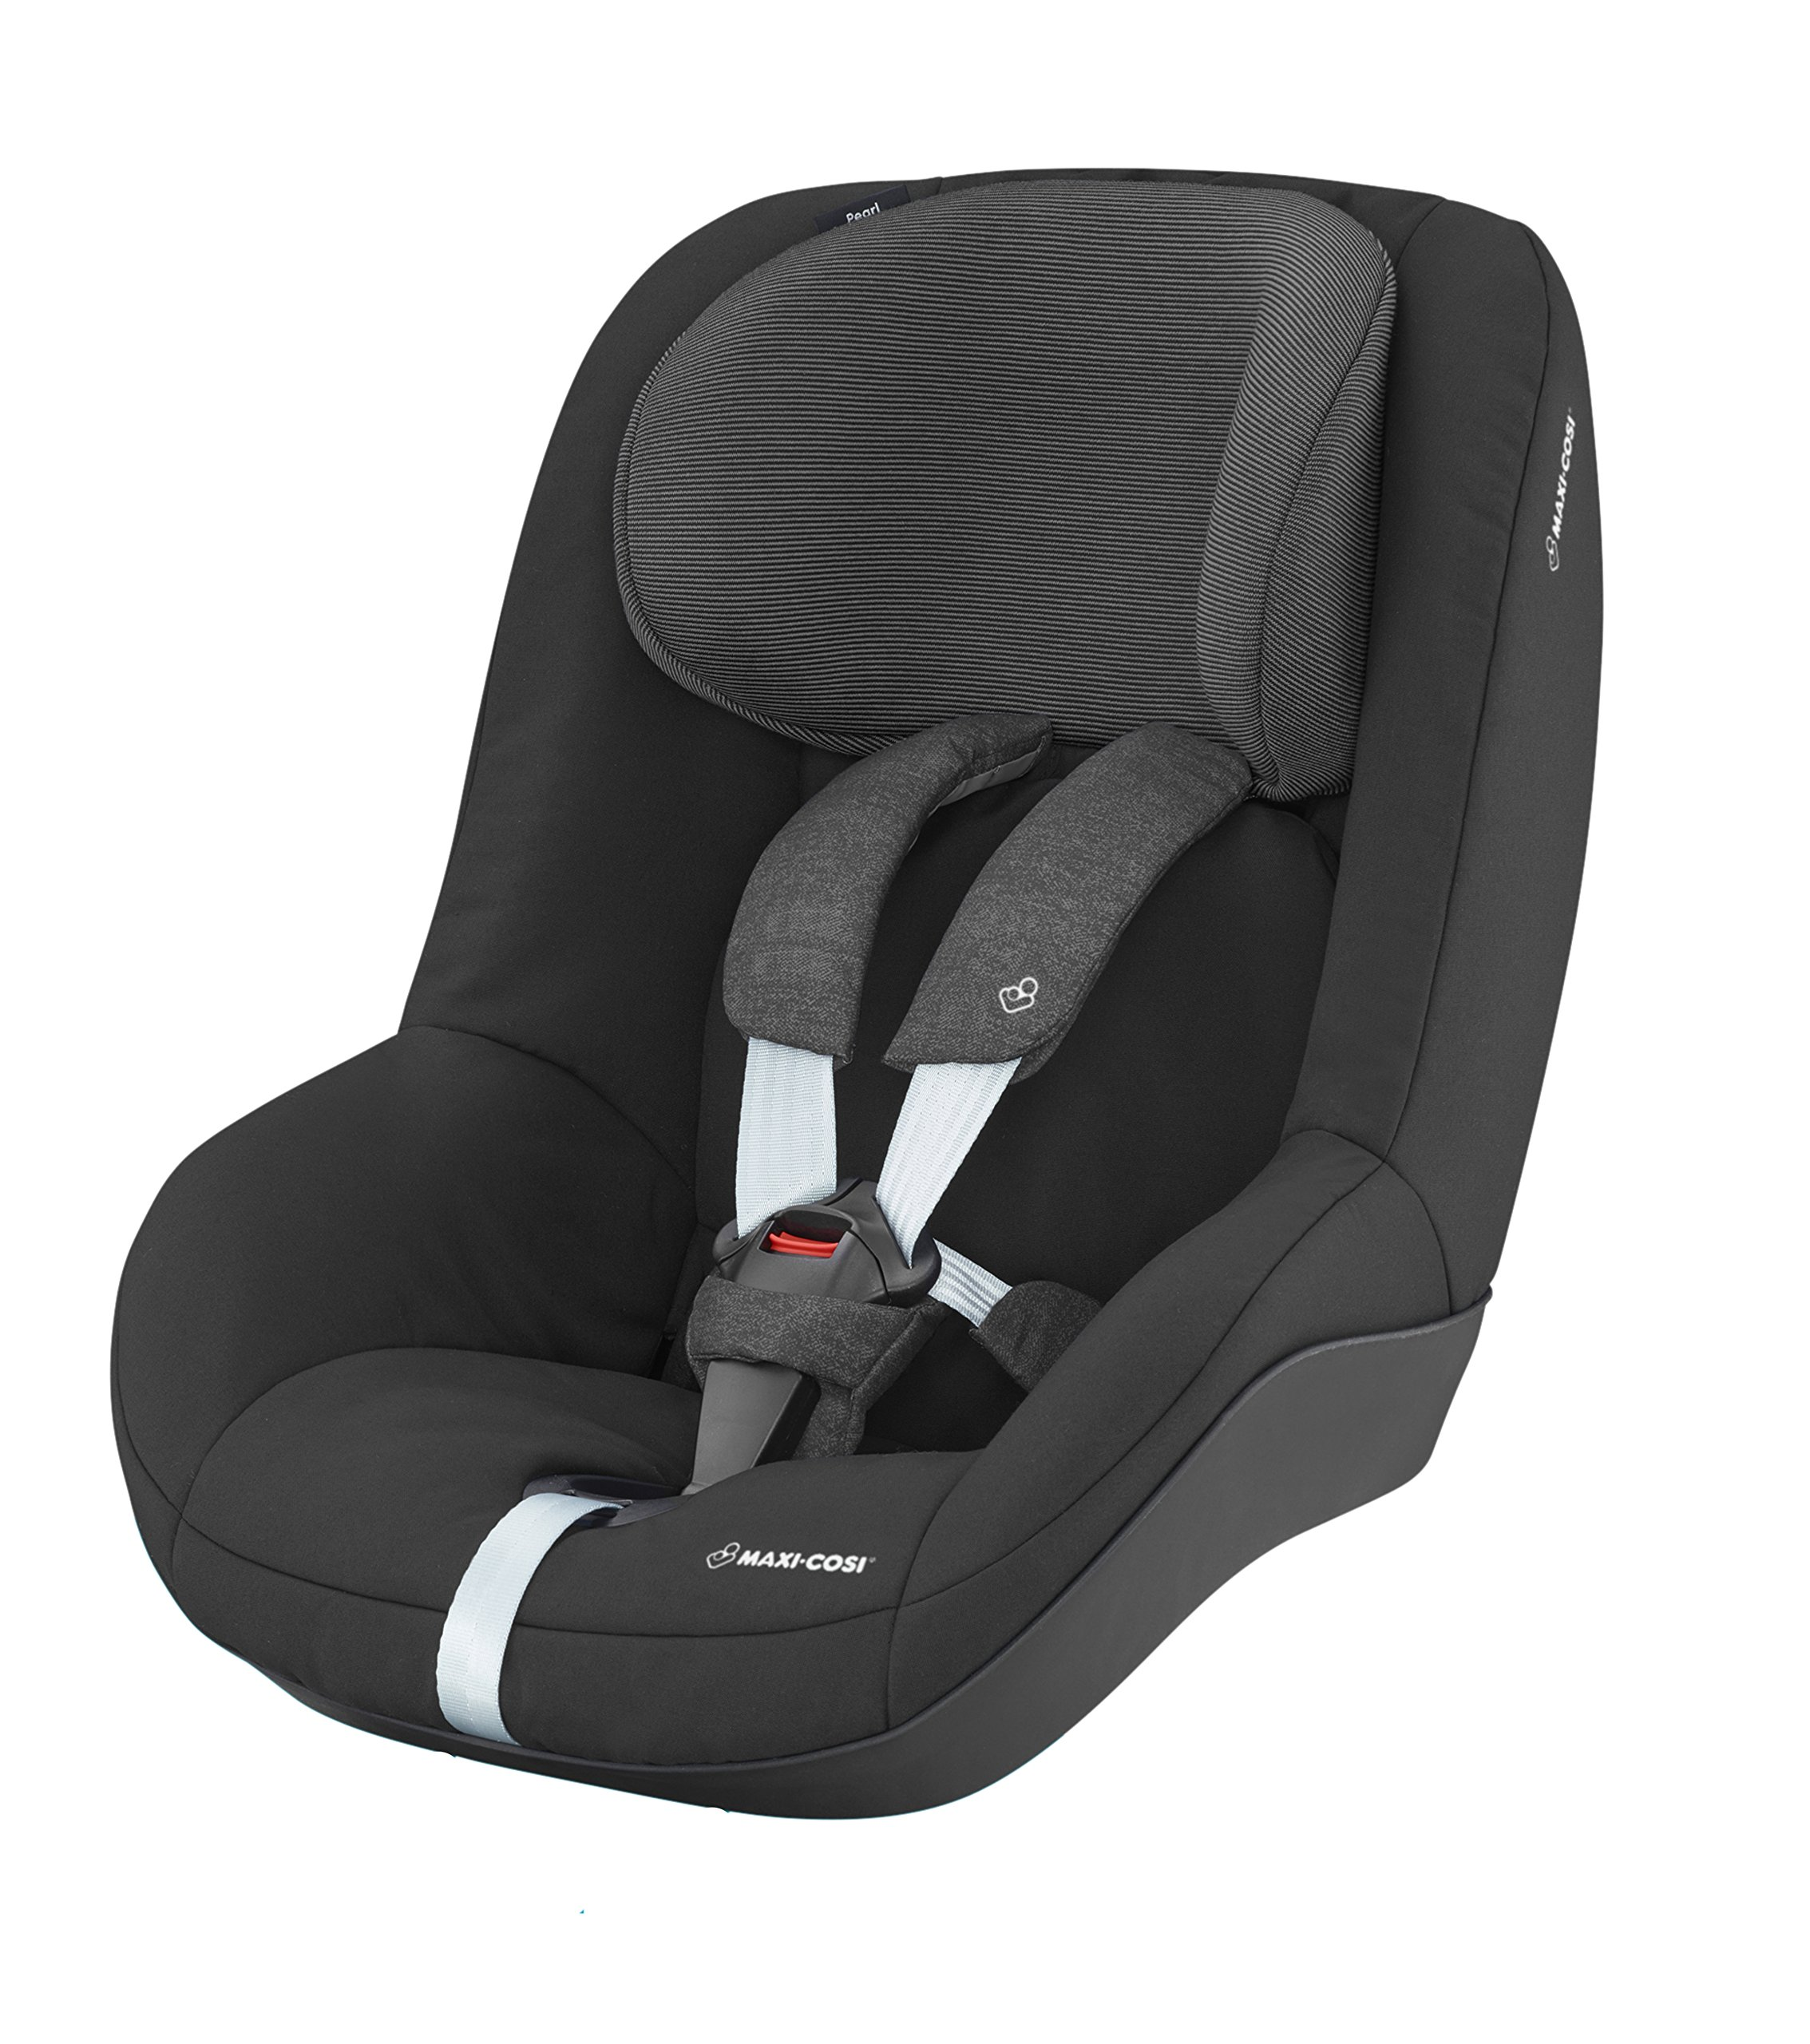 Maxi-Cosi Pearl Toddler Car Seat Group 1, ISOFIX Car Seat, Compact, , 9 Months - 4 Years, 9-18 kg, Nomad Black Maxi-Cosi Interactive visual and audible feedback when the pearl is correctly installed with the maxi-cosi family fix base in the car Spring-loaded, stay open harness to make buckling up your toddler easier as the harness stays out of the way Simultaneous harness & headrest adjustment can be operated with one-hand 2